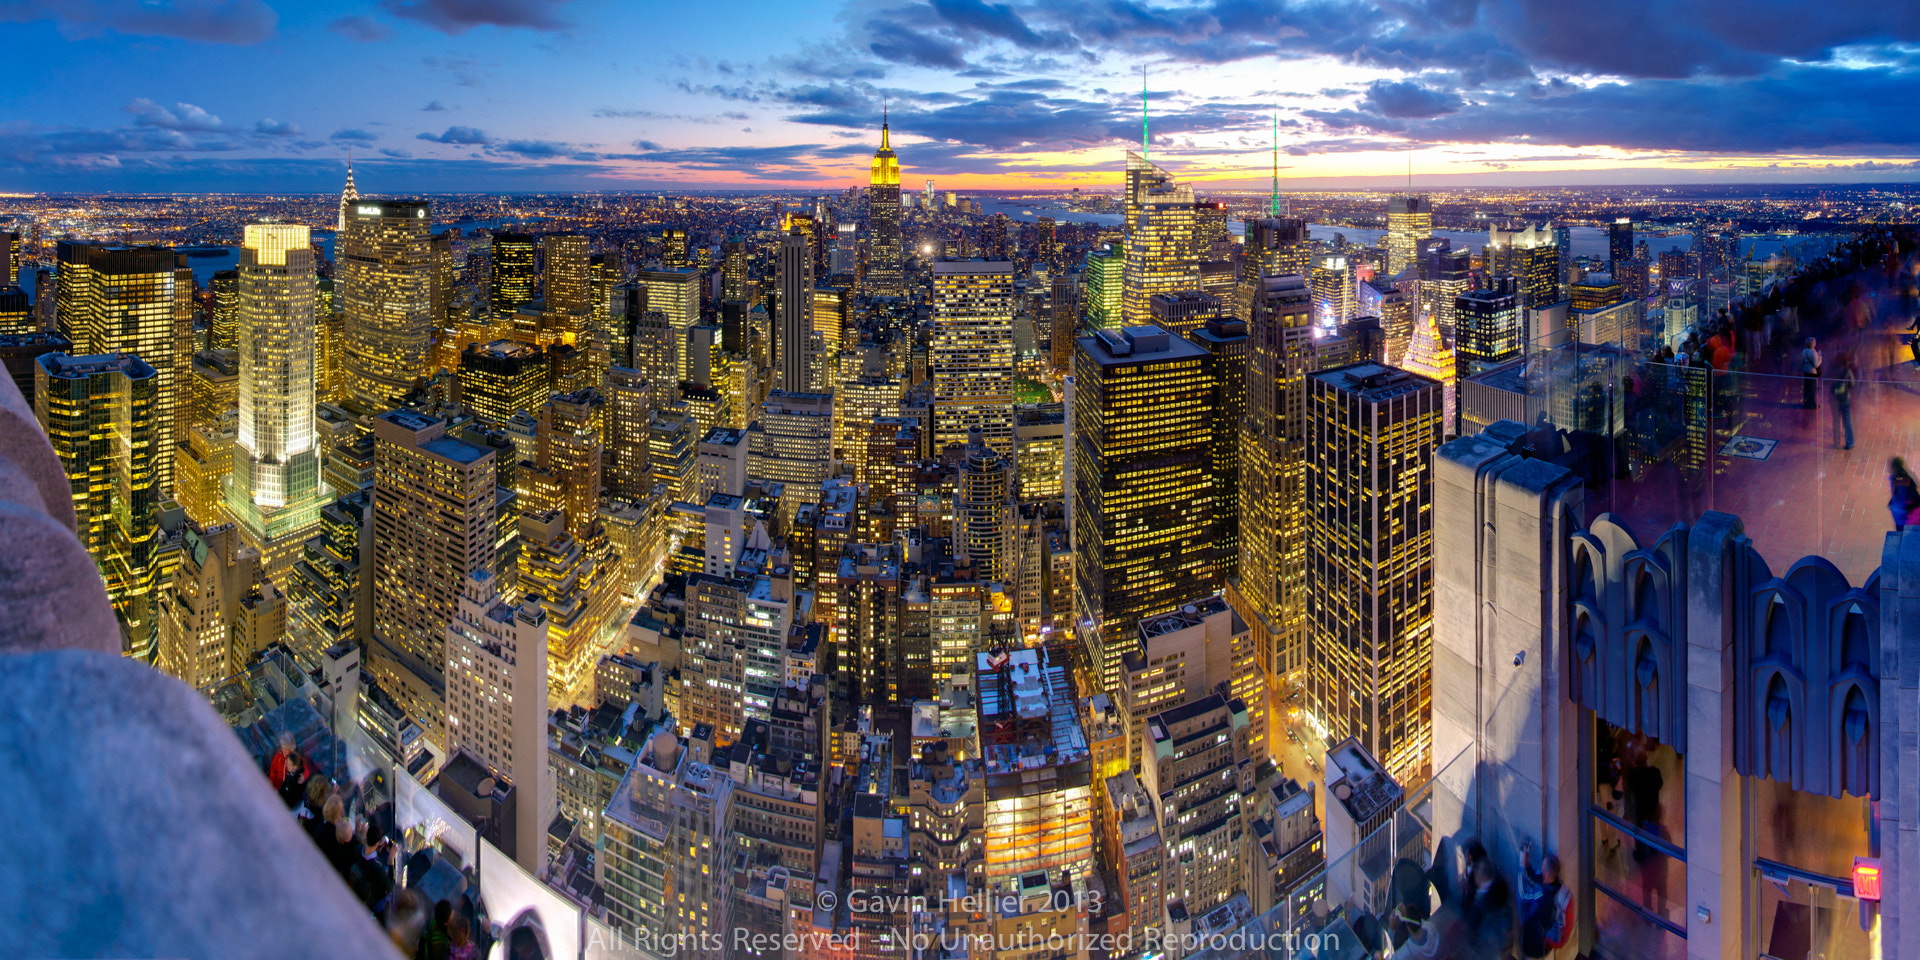 Photograph New York, United States of America, Manhattan view towards Empire State Building  by Gavin Hellier on 500px